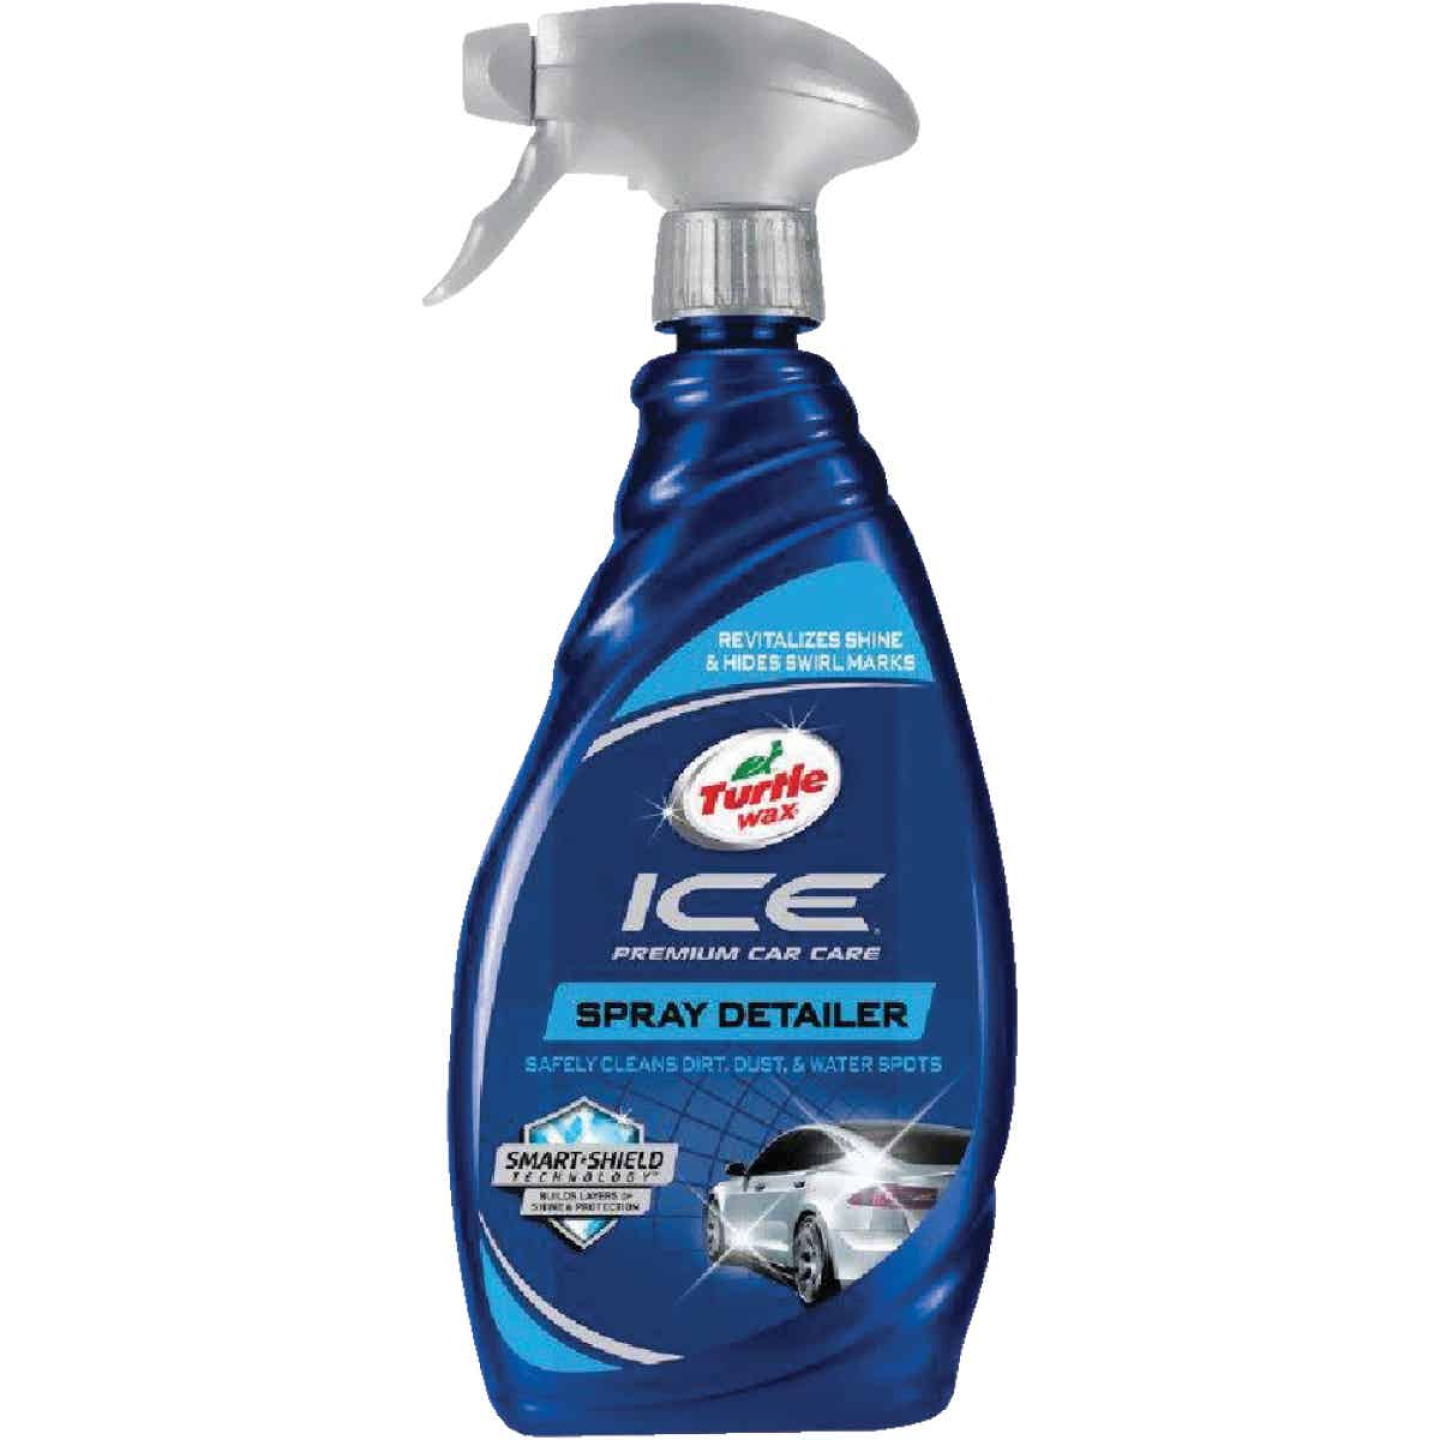 Turtle Wax ICE 20 Oz. Trigger Spray Detailer Image 1